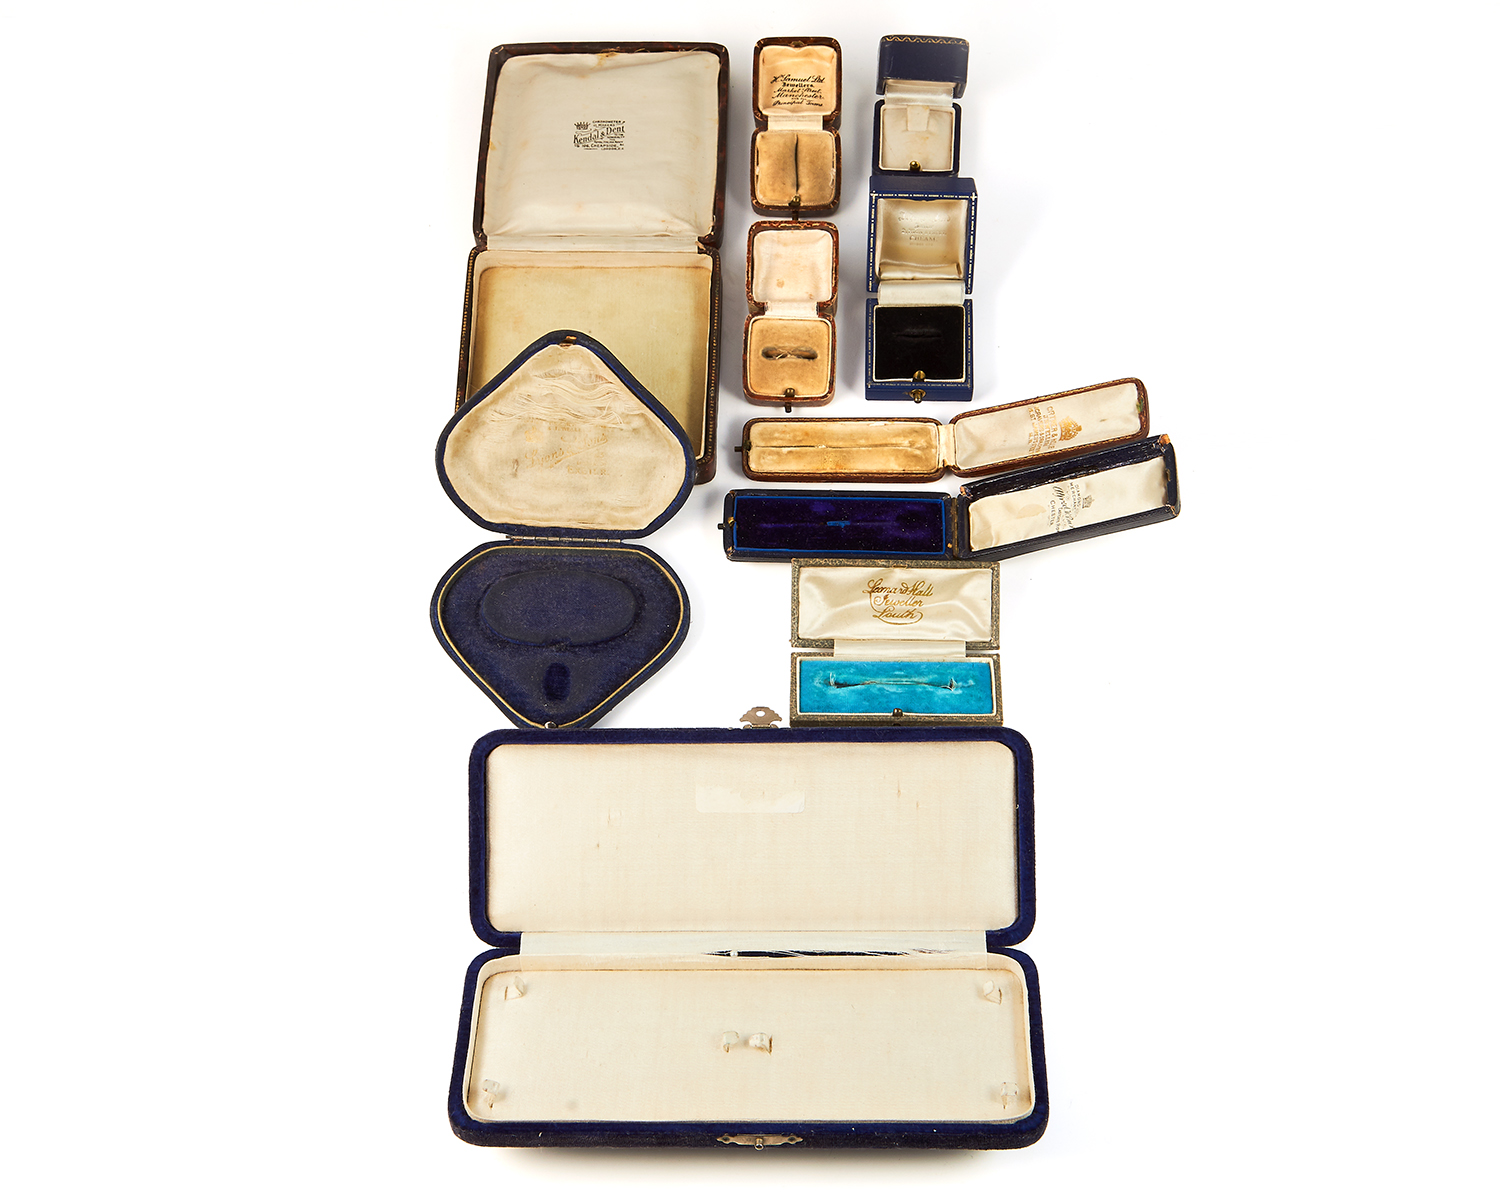 Los 247 - A COLLECTION OF TEN ANTIQUE AND NEWER JEWELLERY BOXES